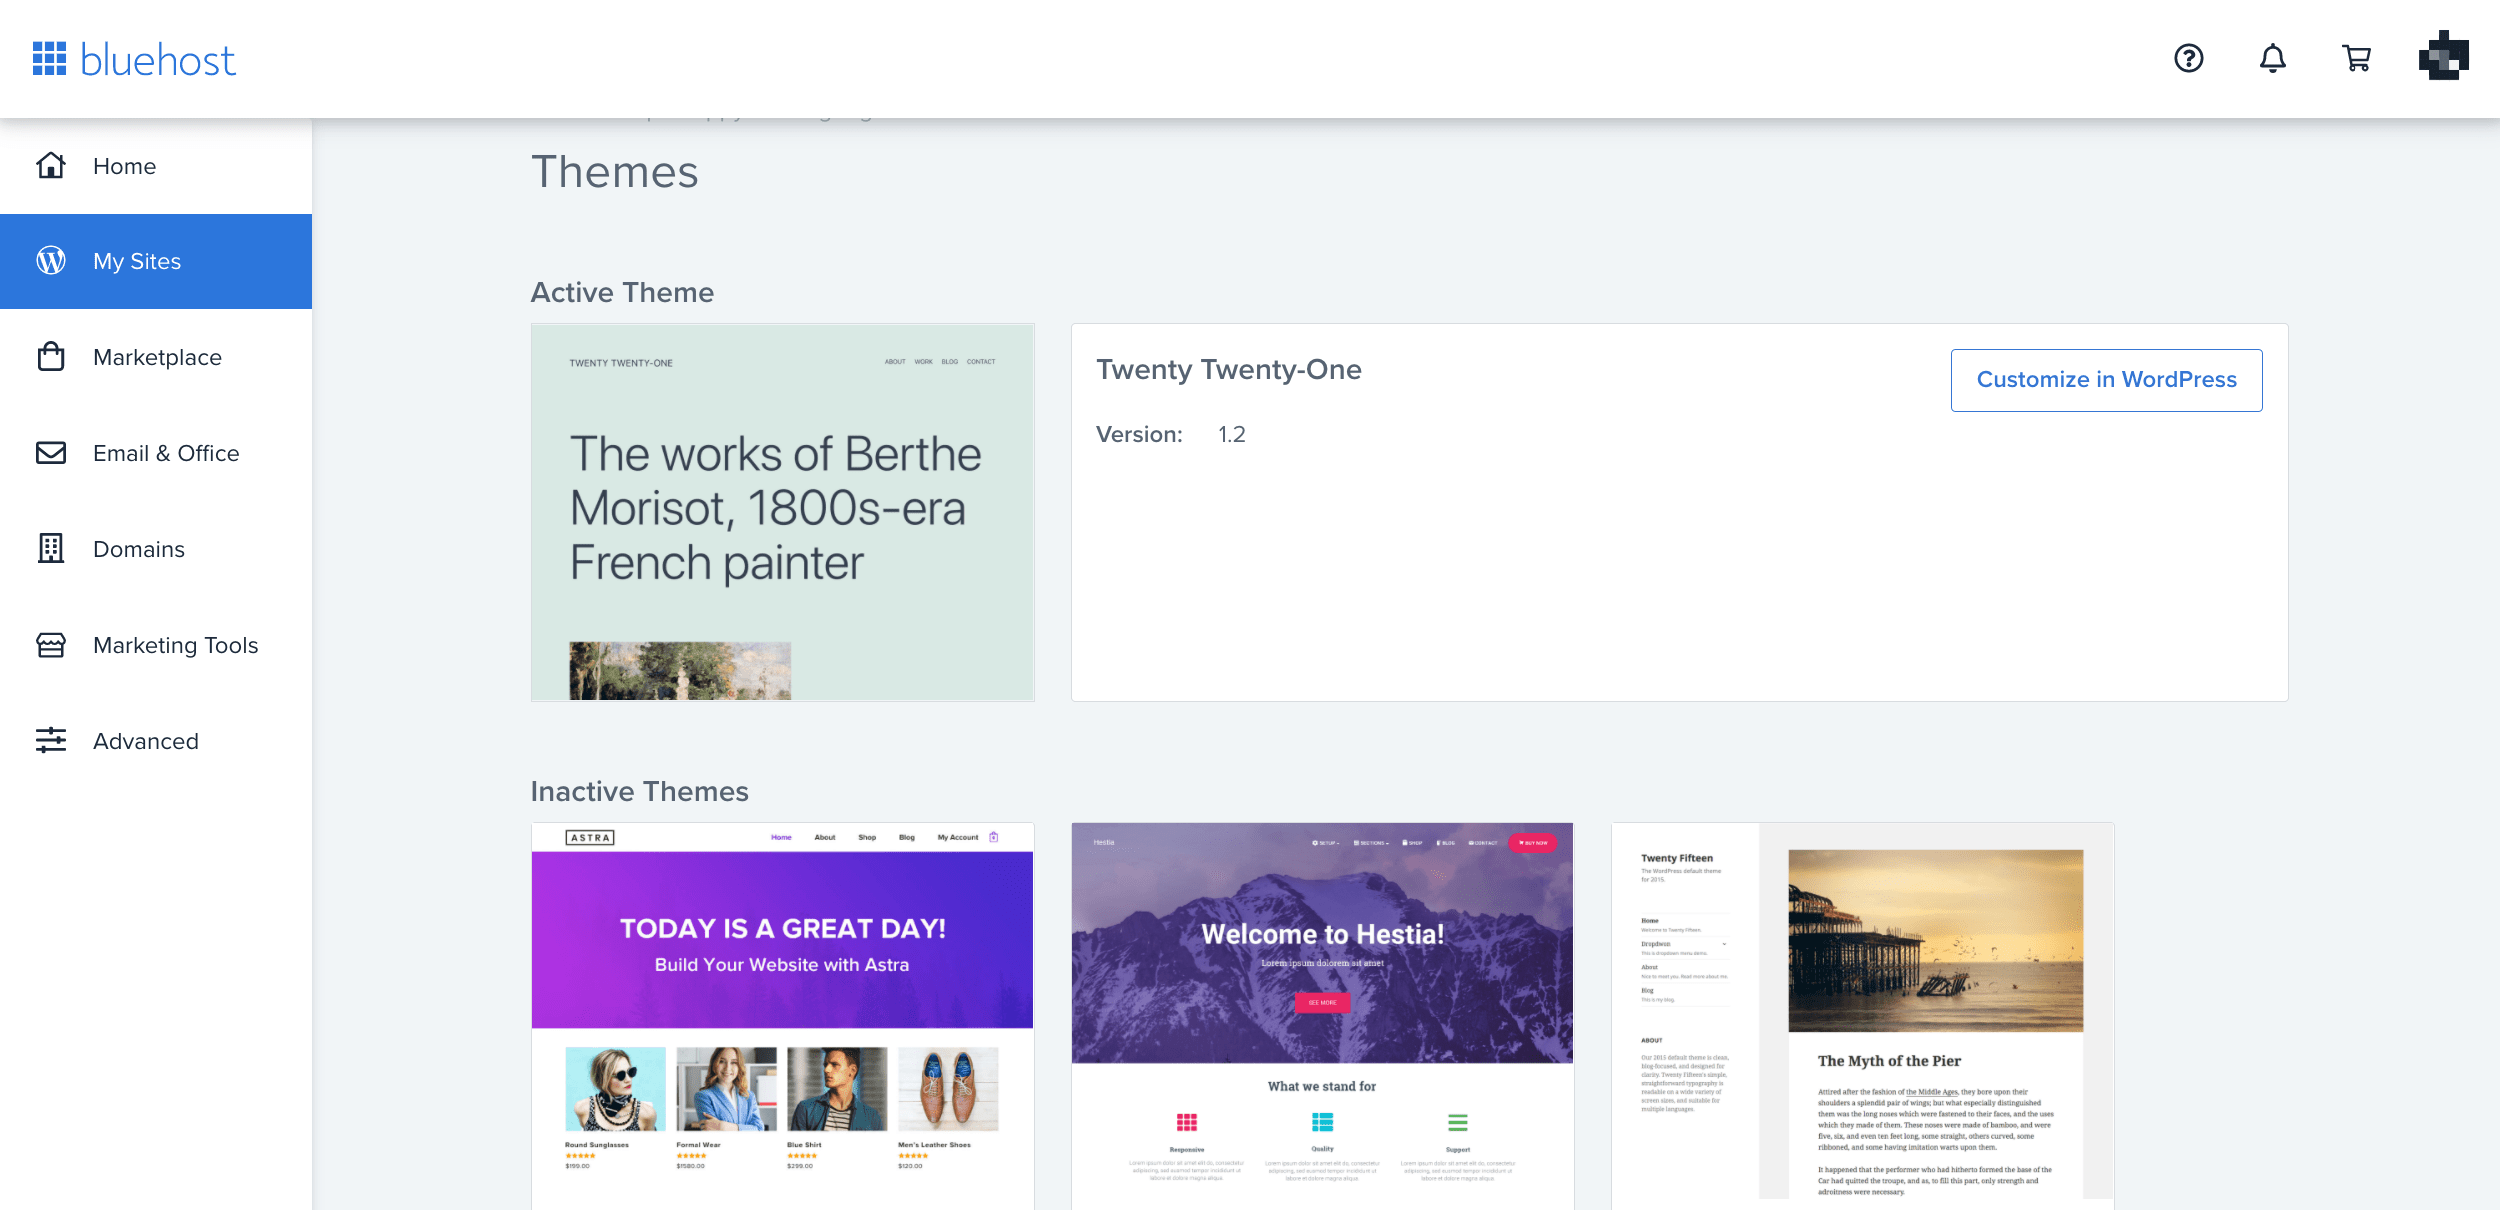 Bluehost themes